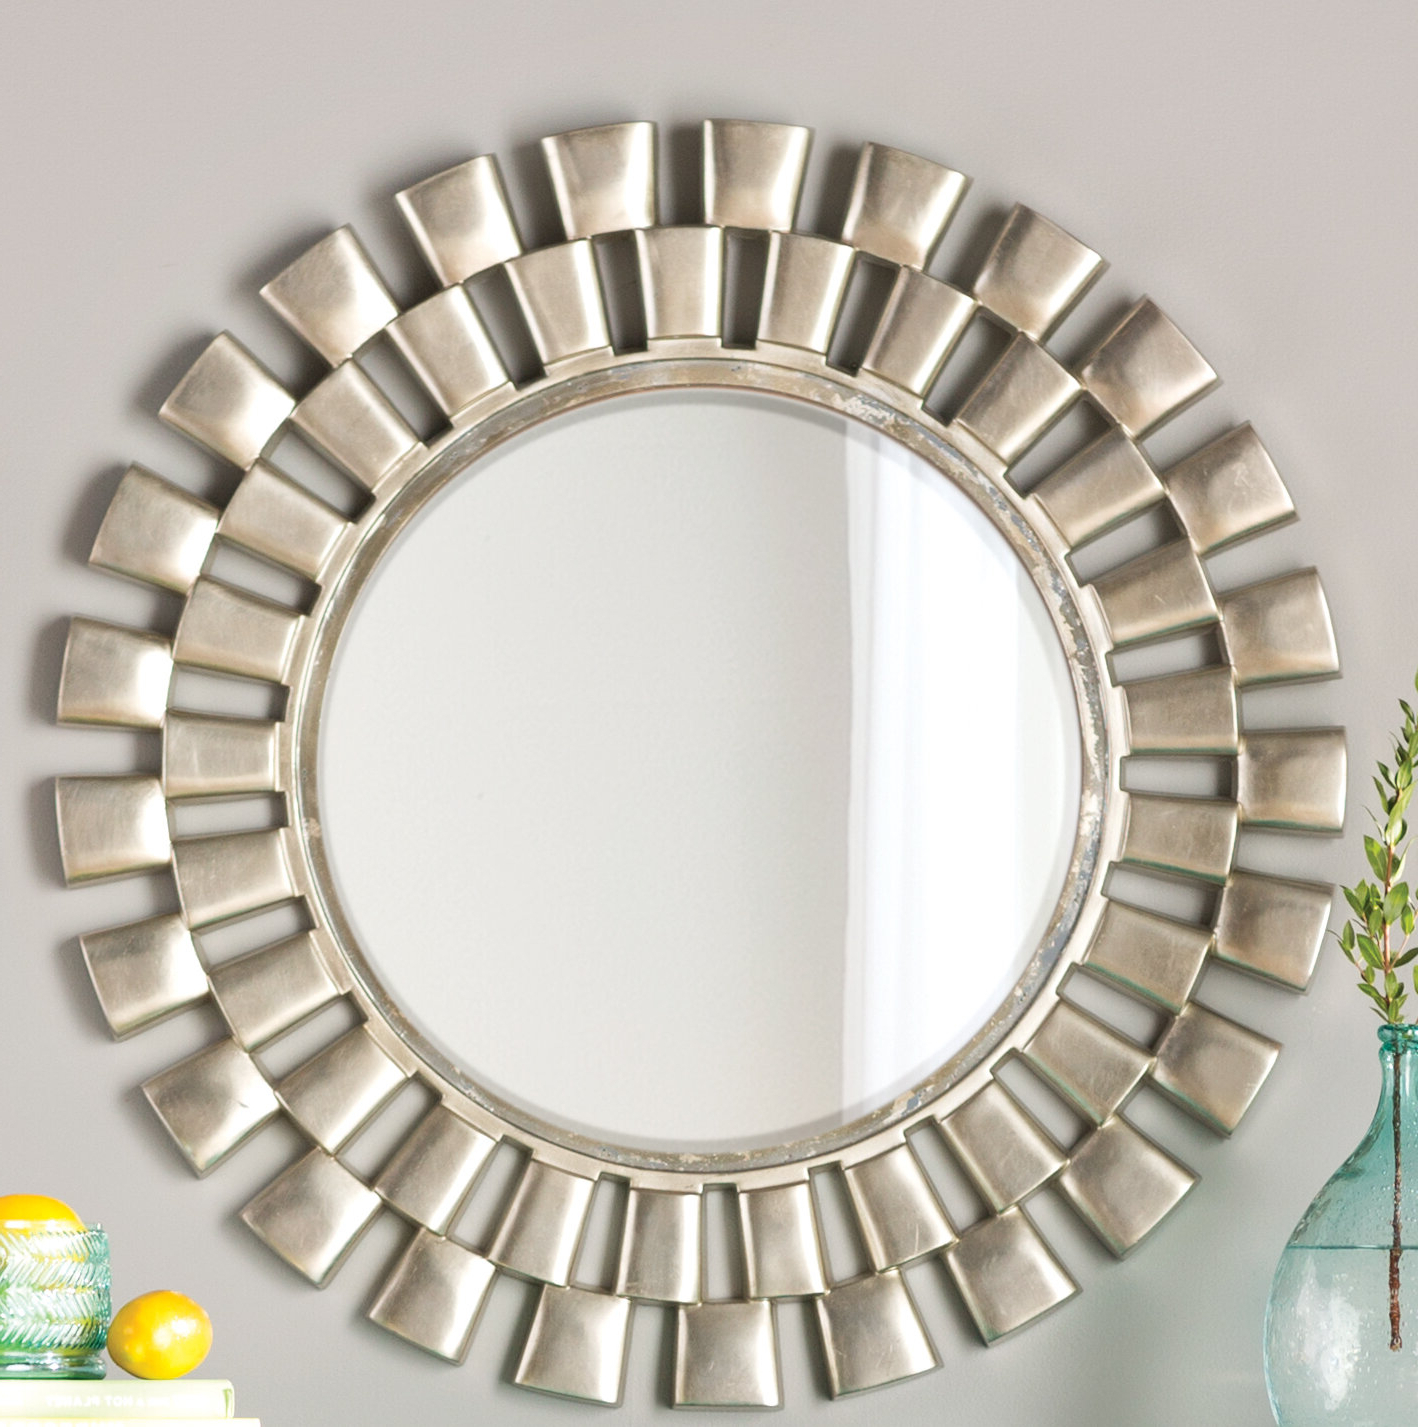 Estrela Modern Sunburst Metal Wall Mirrors Intended For Most Recently Released Glam Beveled Accent Mirror (View 7 of 20)